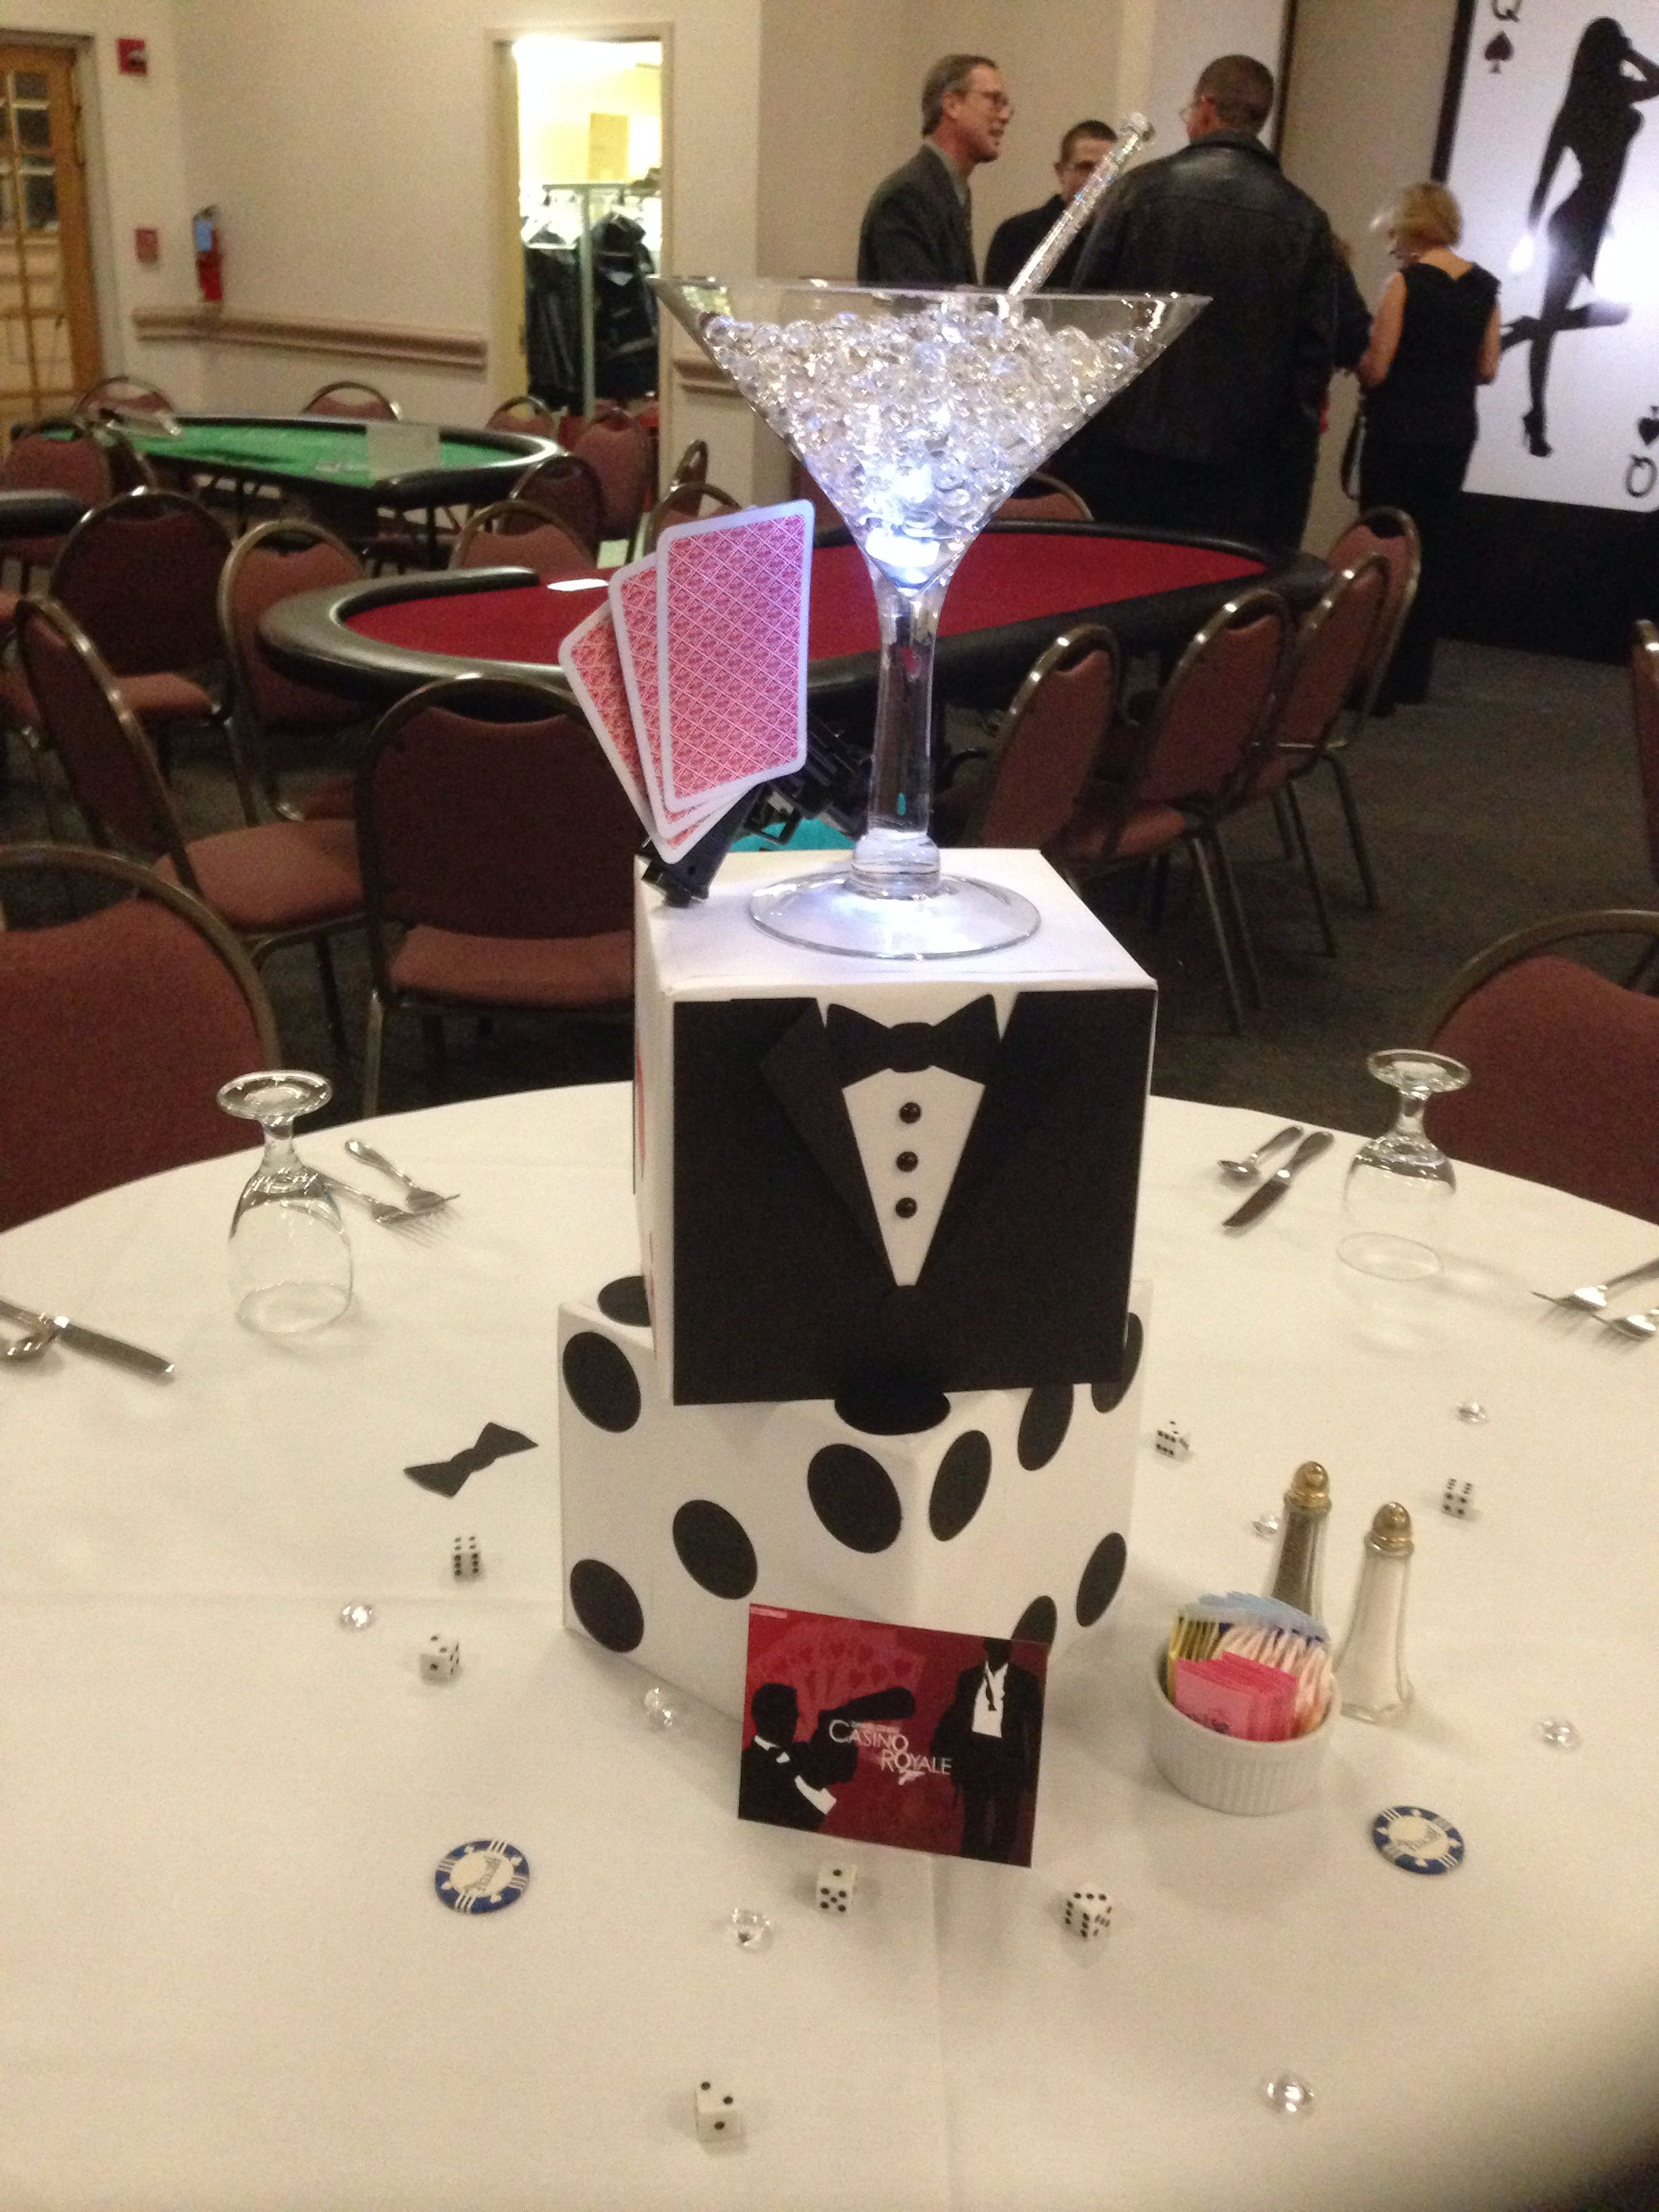 Pin By Sandie Billes On Party Ideas Casino Decorations James